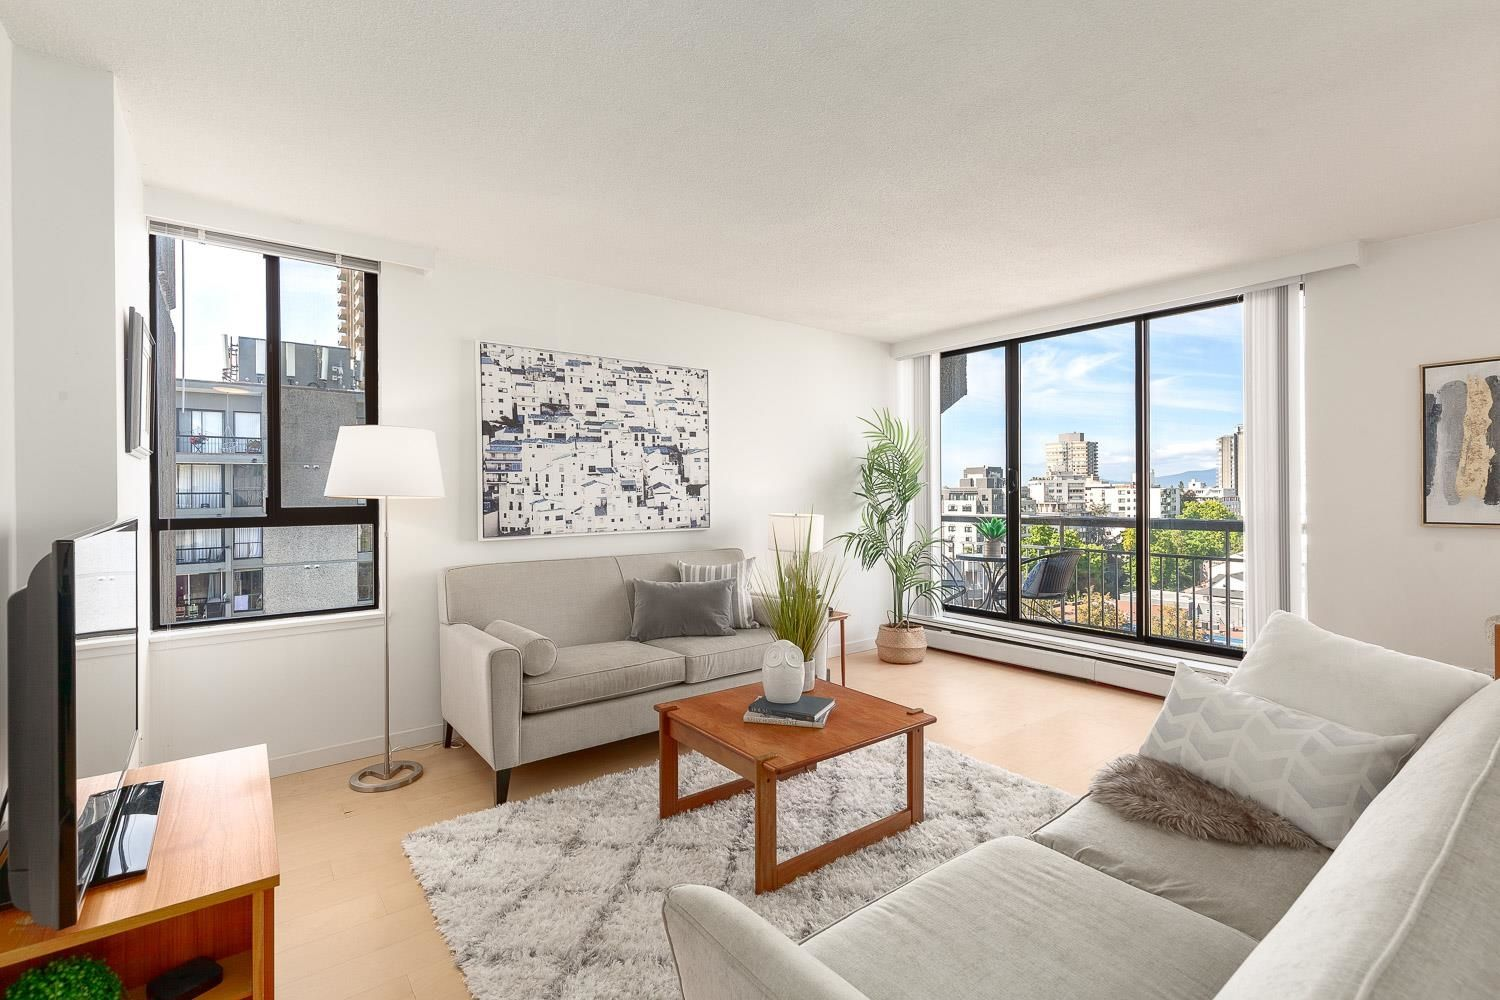 """Main Photo: 1107 1720 BARCLAY Street in Vancouver: West End VW Condo for sale in """"Lancaster Gate"""" (Vancouver West)  : MLS®# R2617720"""